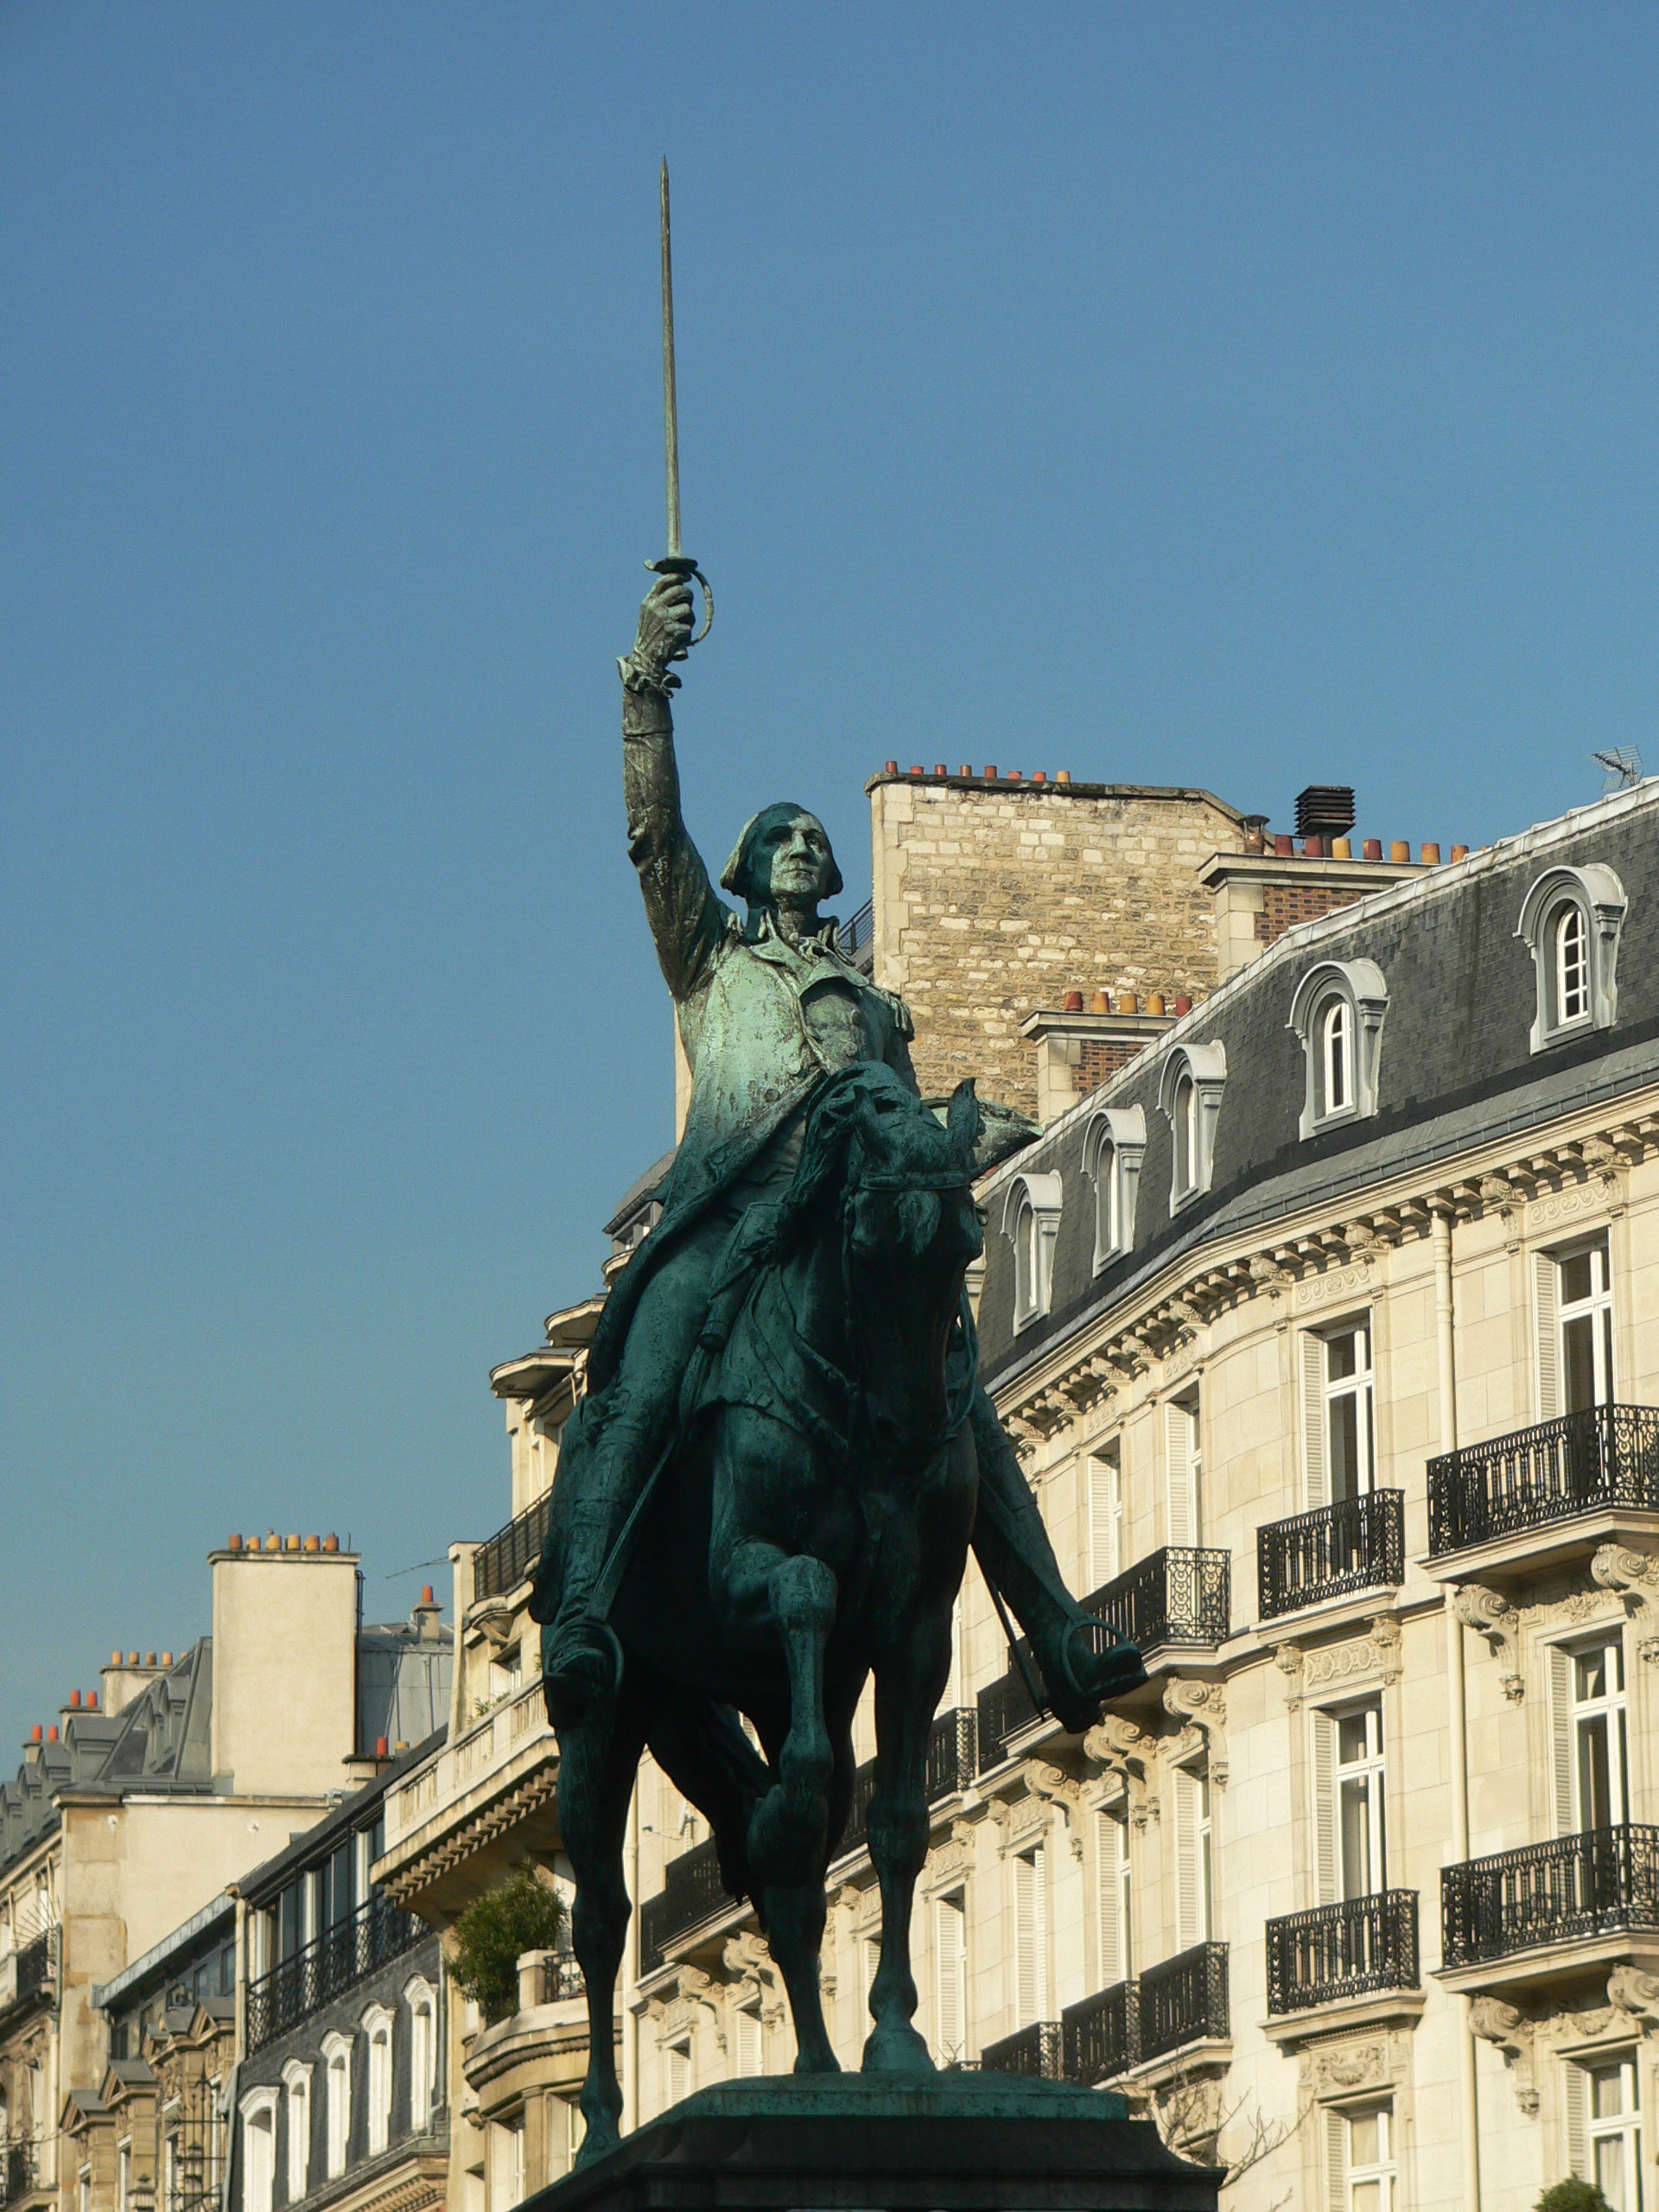 Statue of General George Washington in the 'Republic of France'